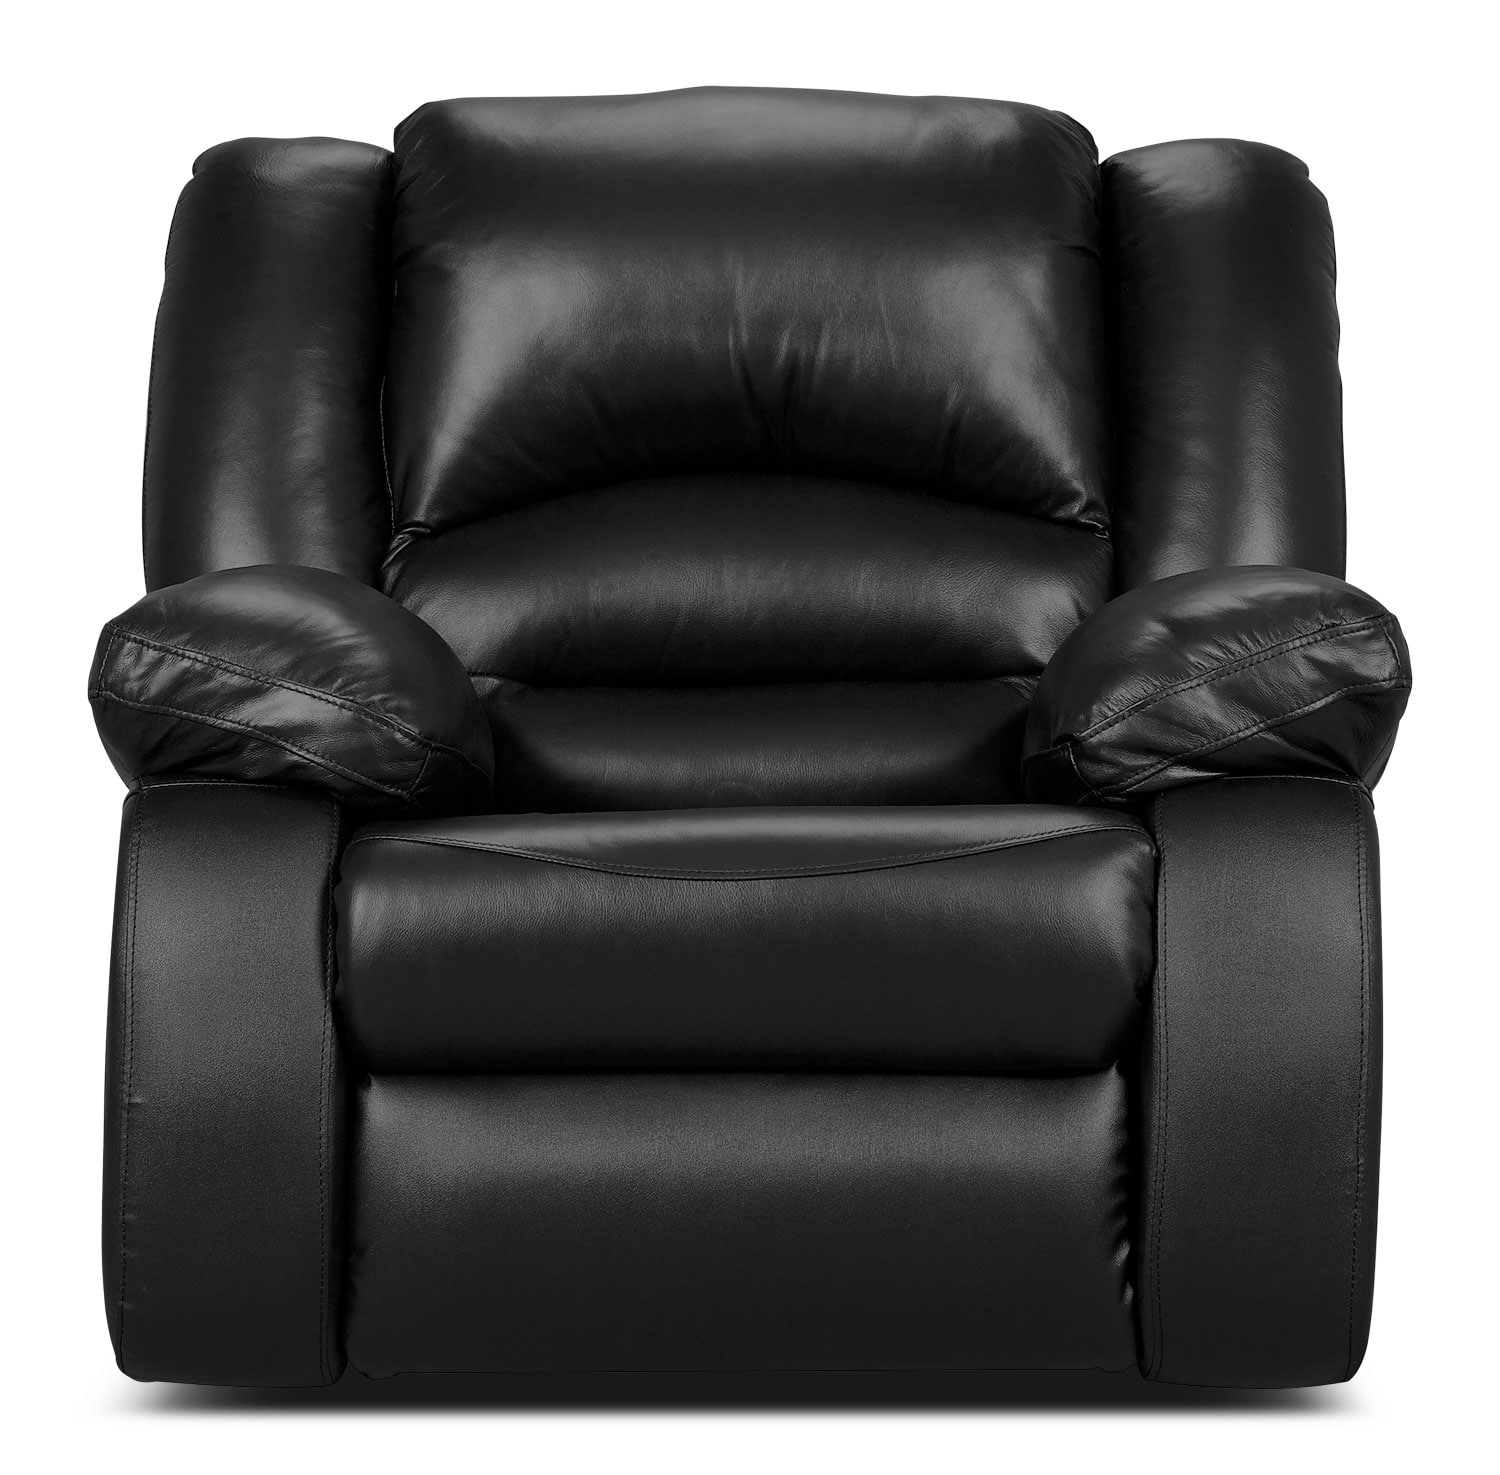 Living Room Furniture - Toreno Black Genuine Leather Power Recliner